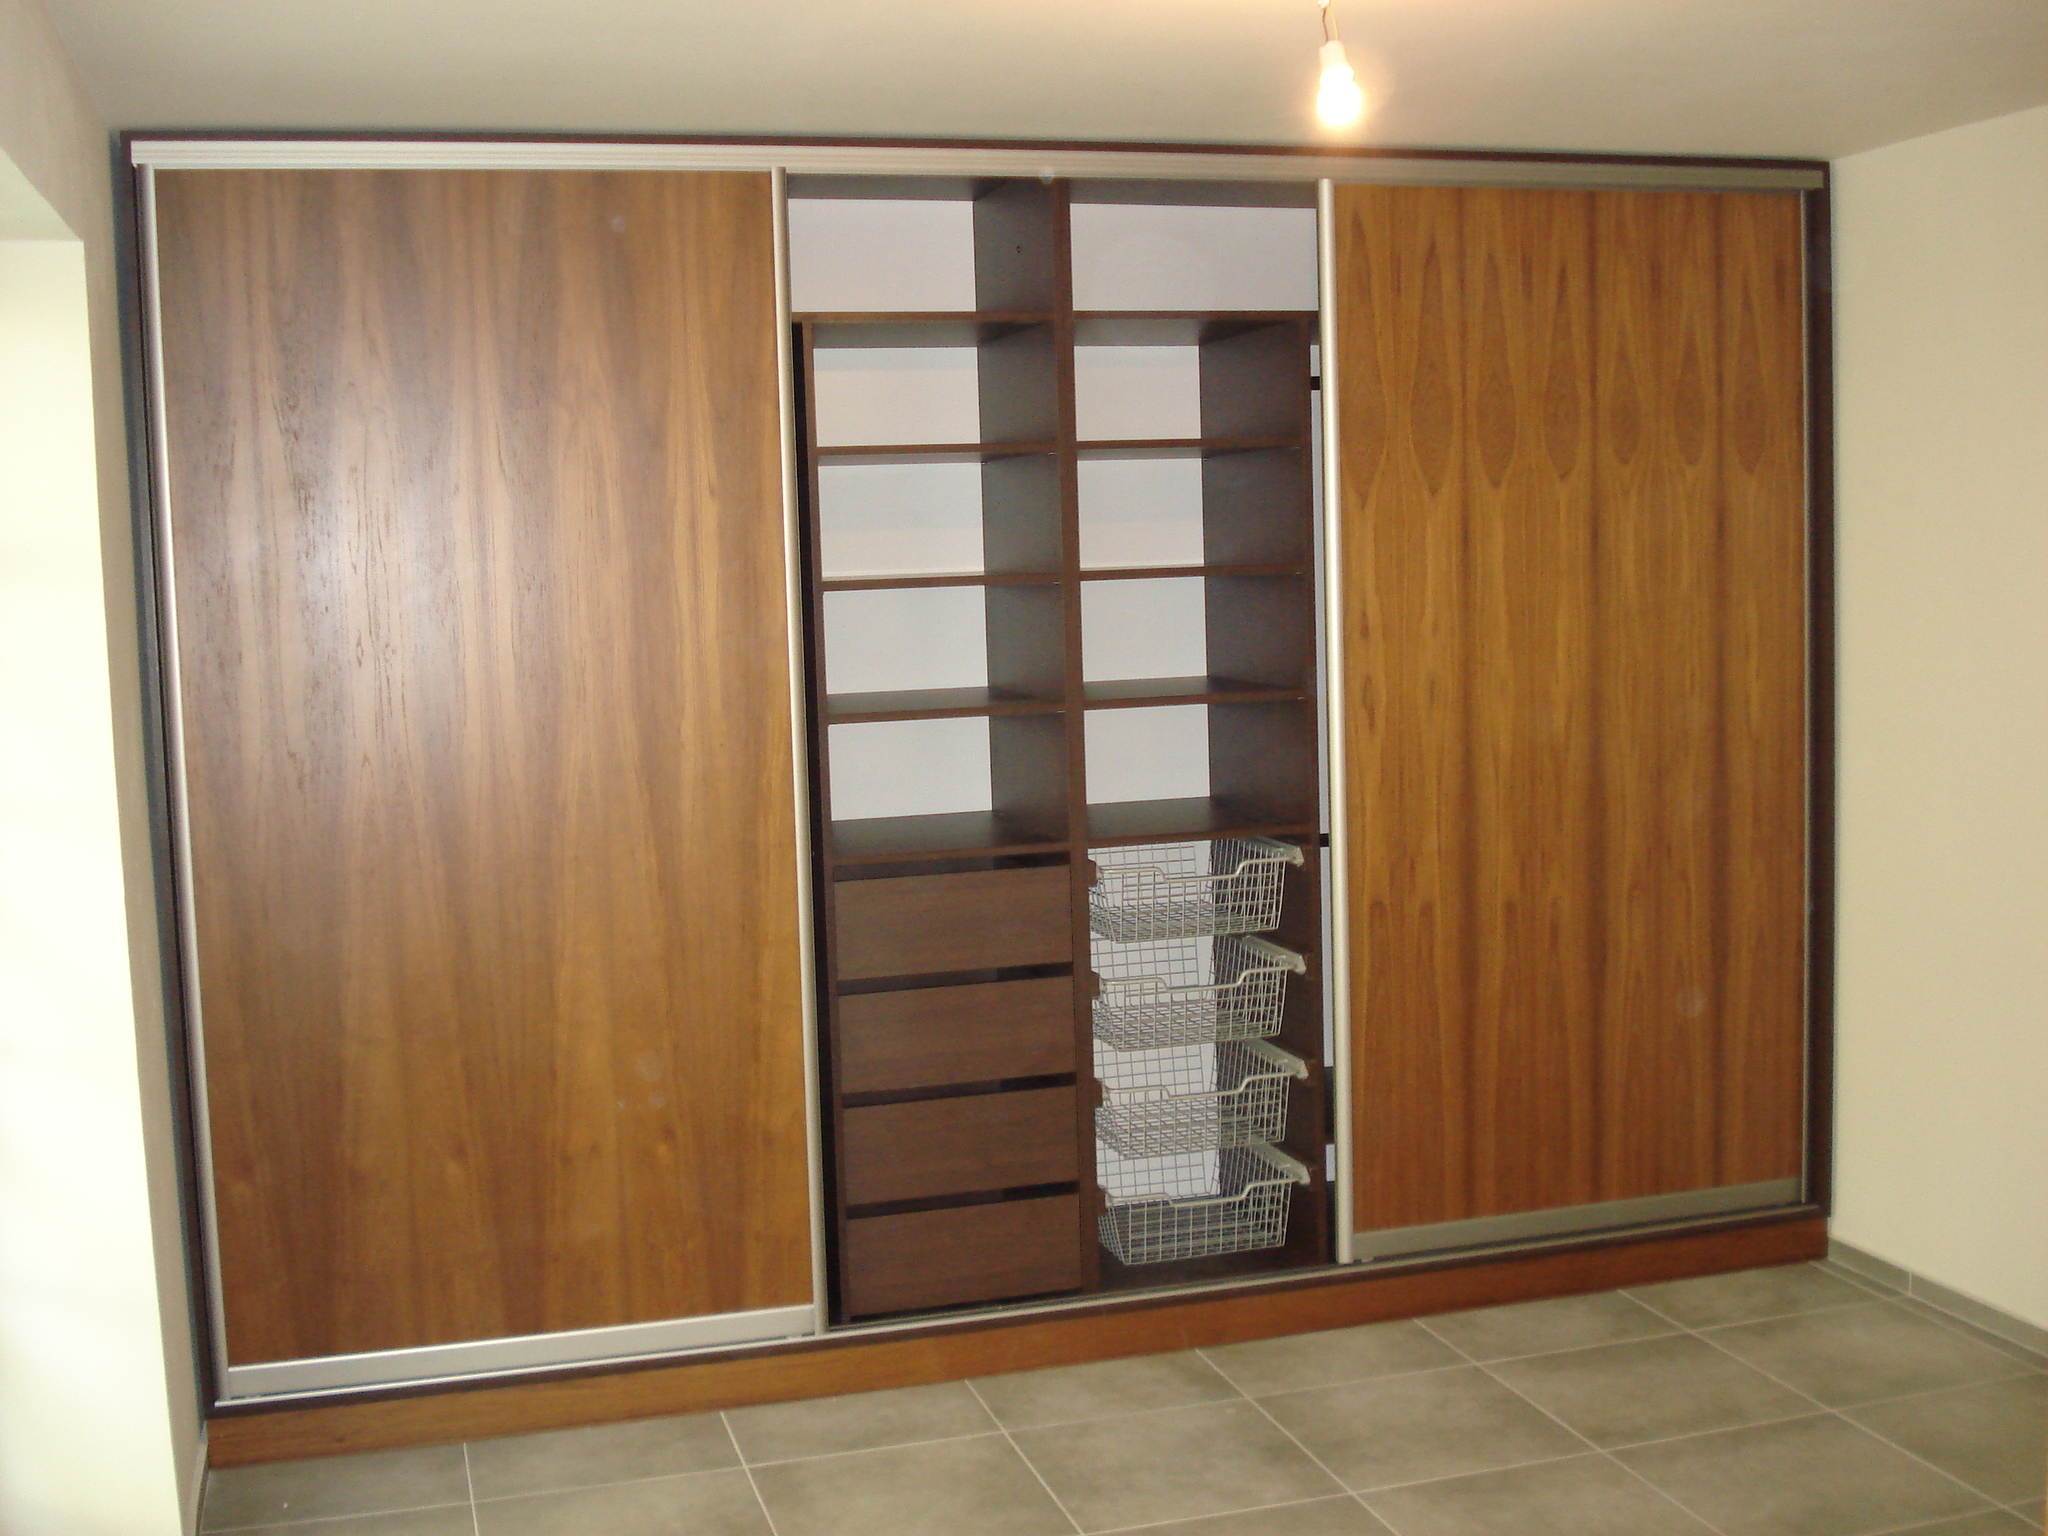 We produce doors, kitchens, furniture, replica furniture, stairs, fences